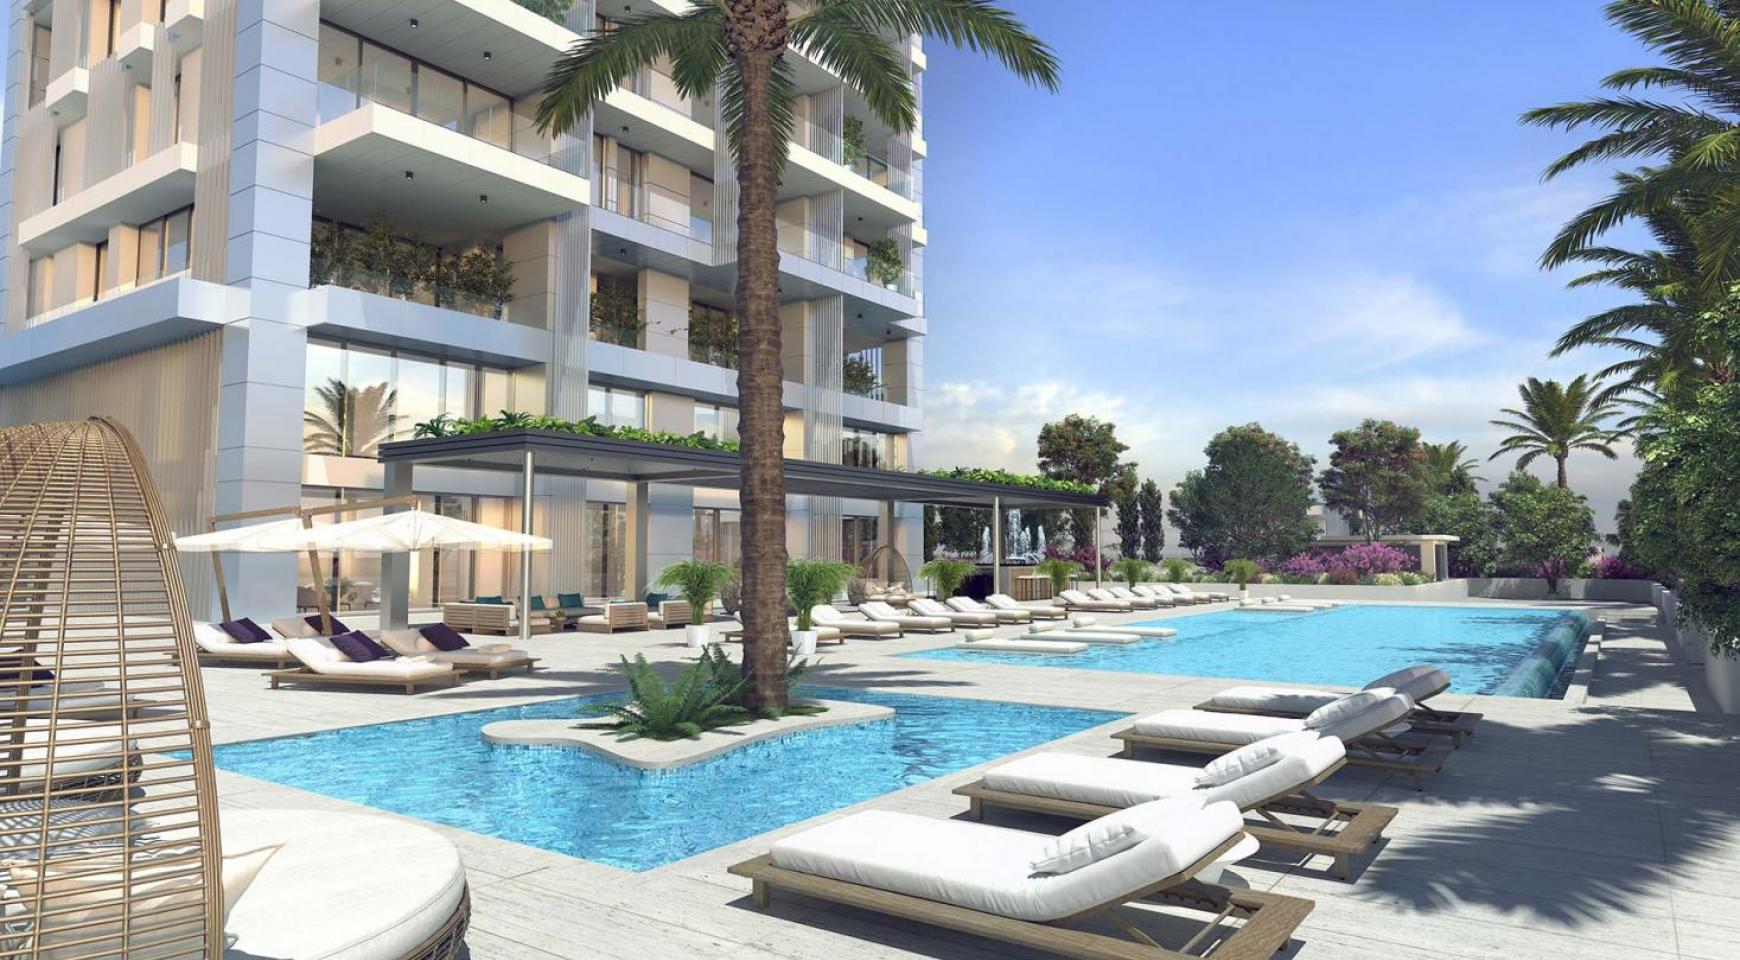 Contemporary 2 Bedroom Apartment with Sea Views in a Luxury Complex - 13